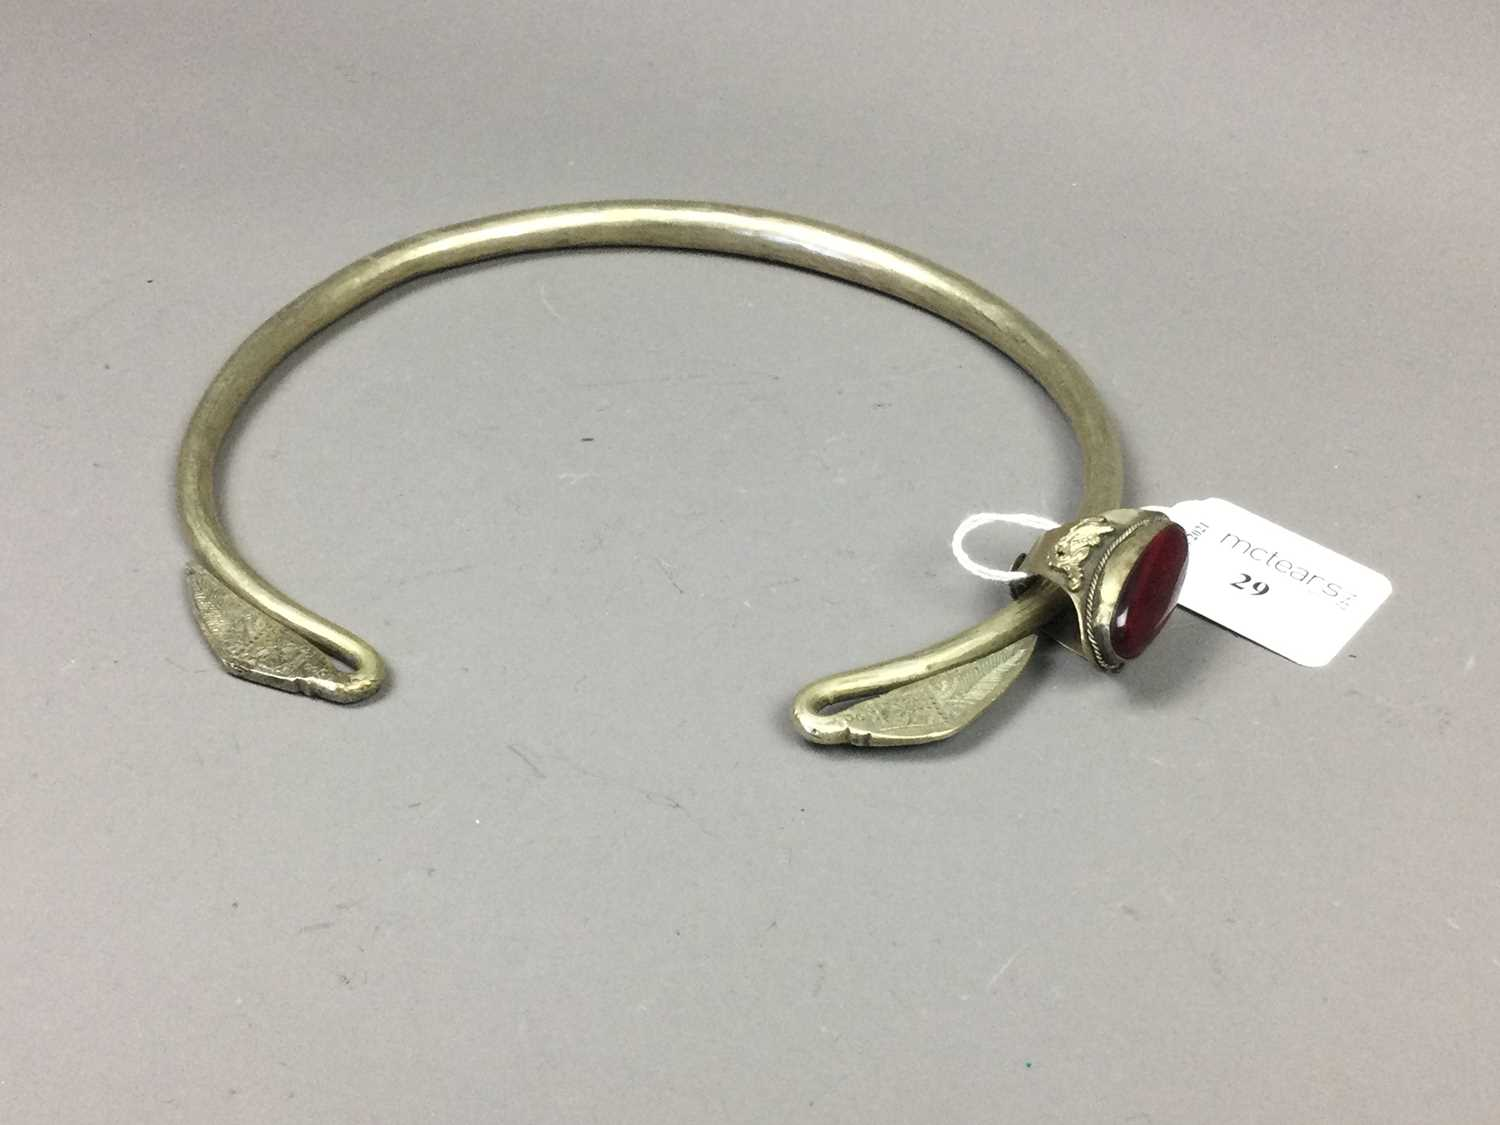 Lot 29 - A CHINESE TORQUE NECKLACE AND A CHINESE RING